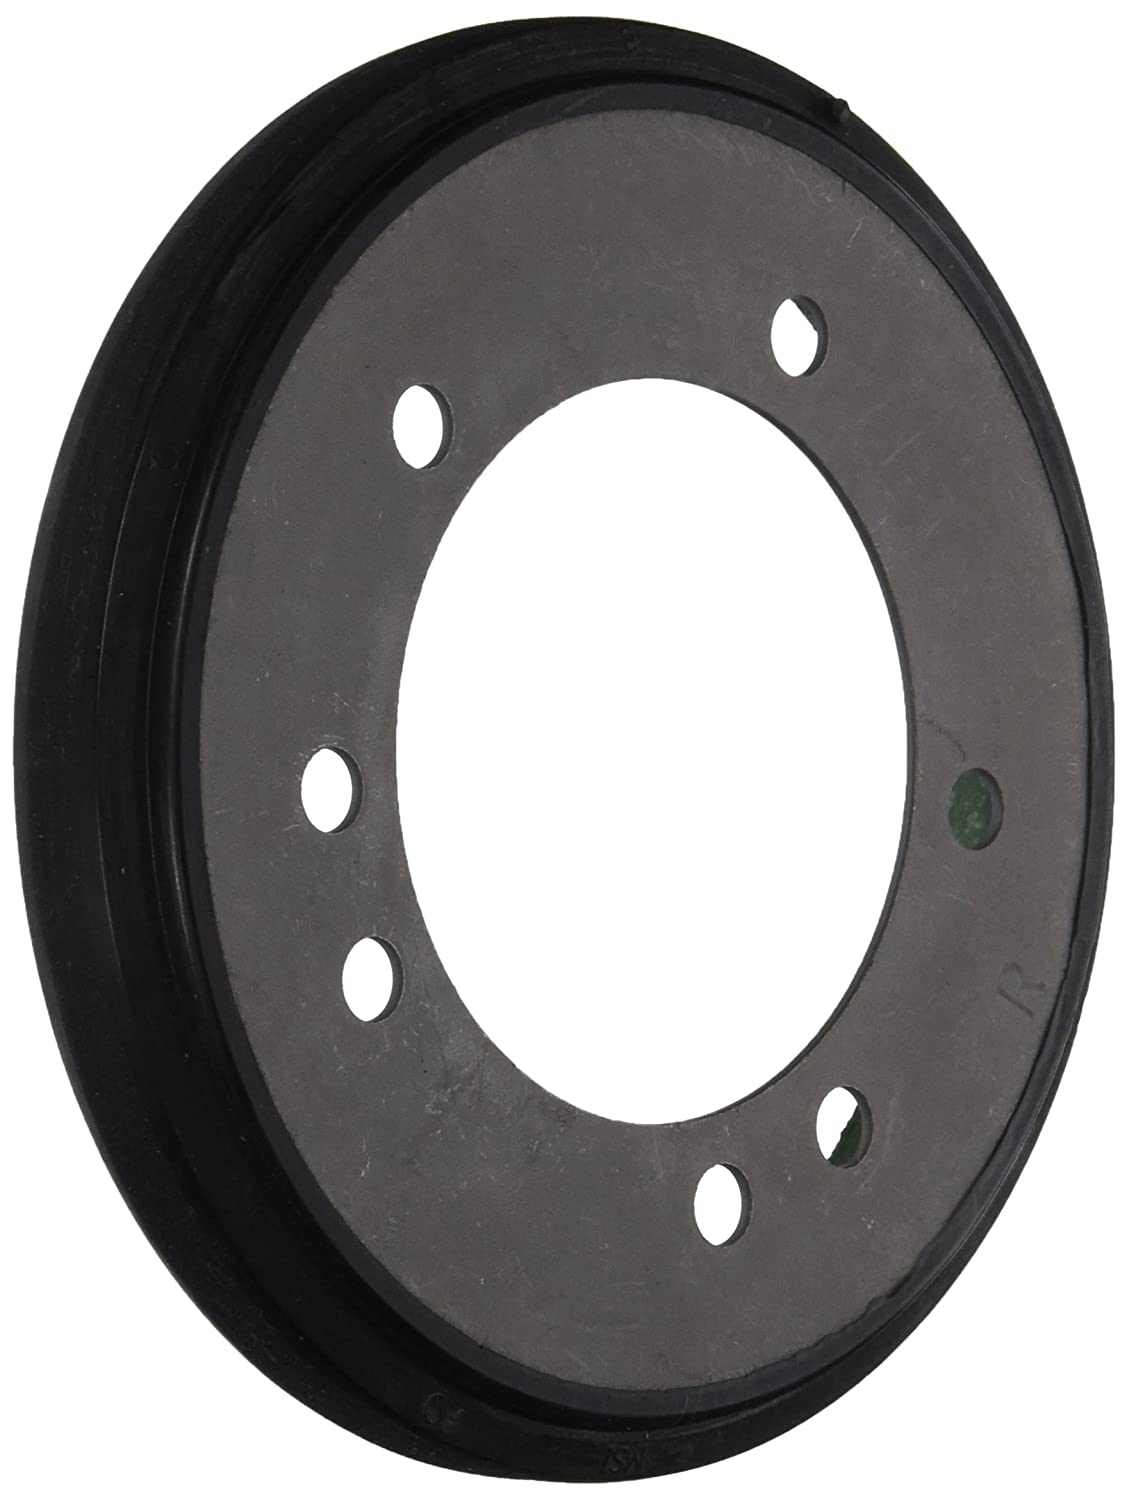 ROT 10169 Disc Drive with Lining Snapper Replacement Tool Part